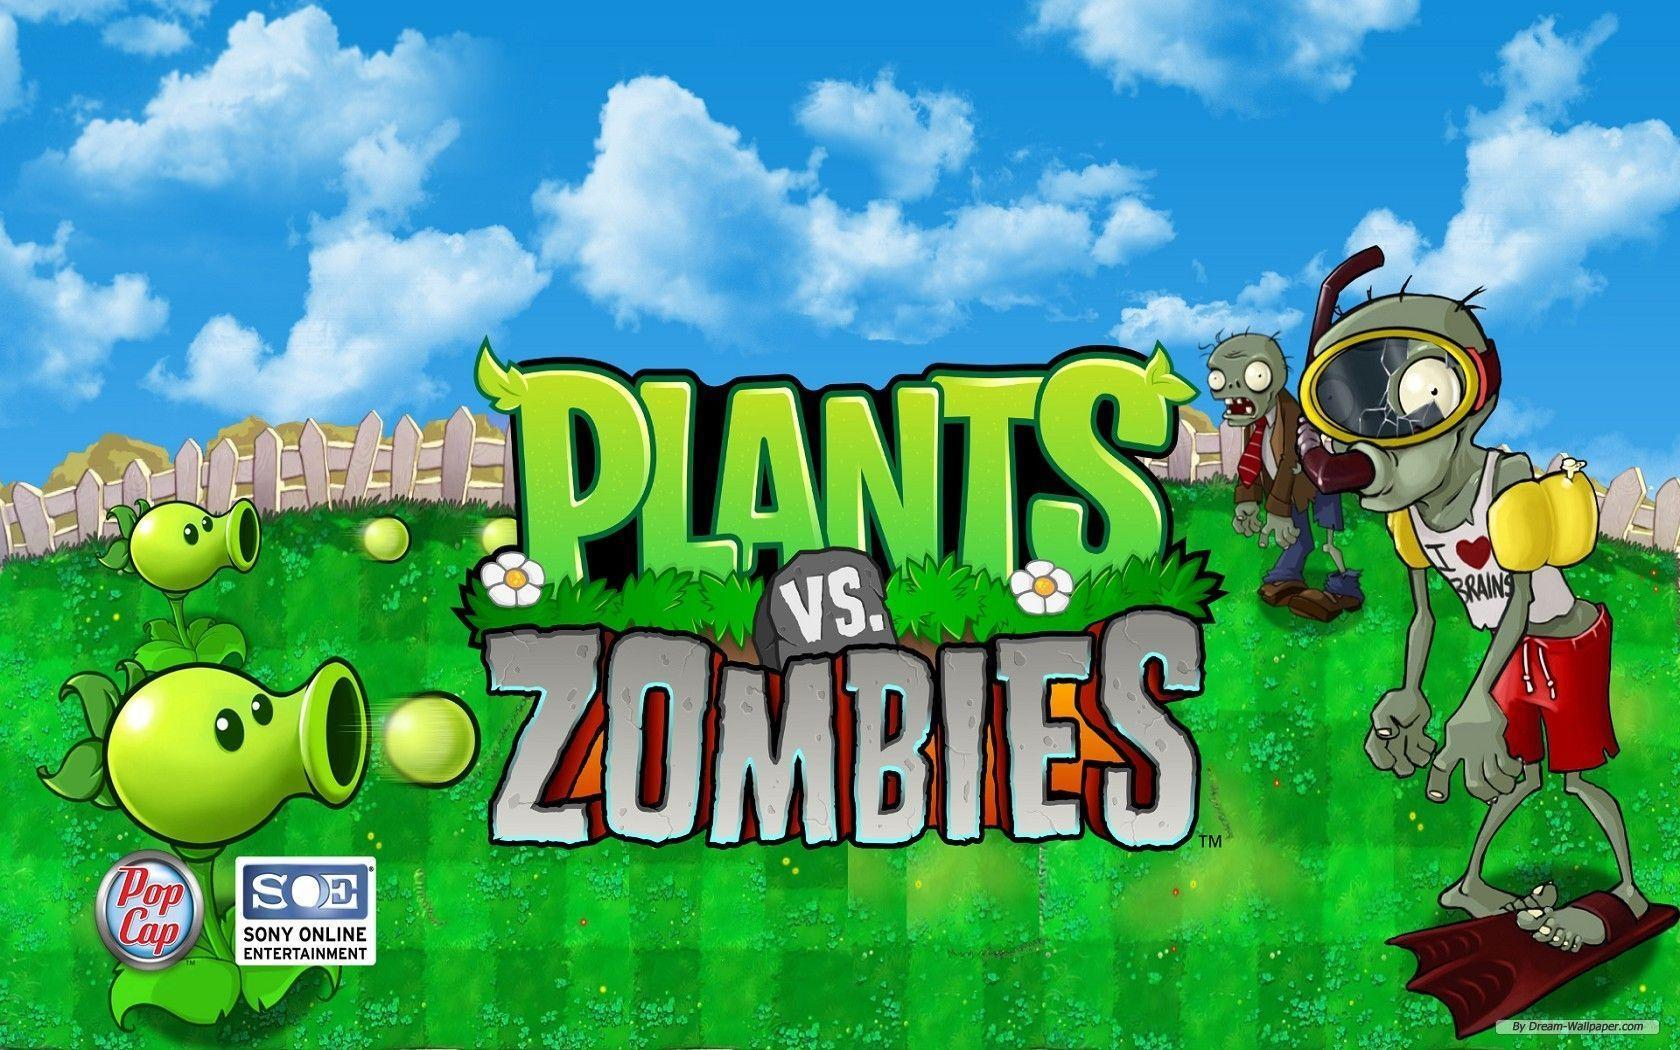 Plants Vs Zombies Wallpapers Top Free Plants Vs Zombies Backgrounds Wallpaperaccess